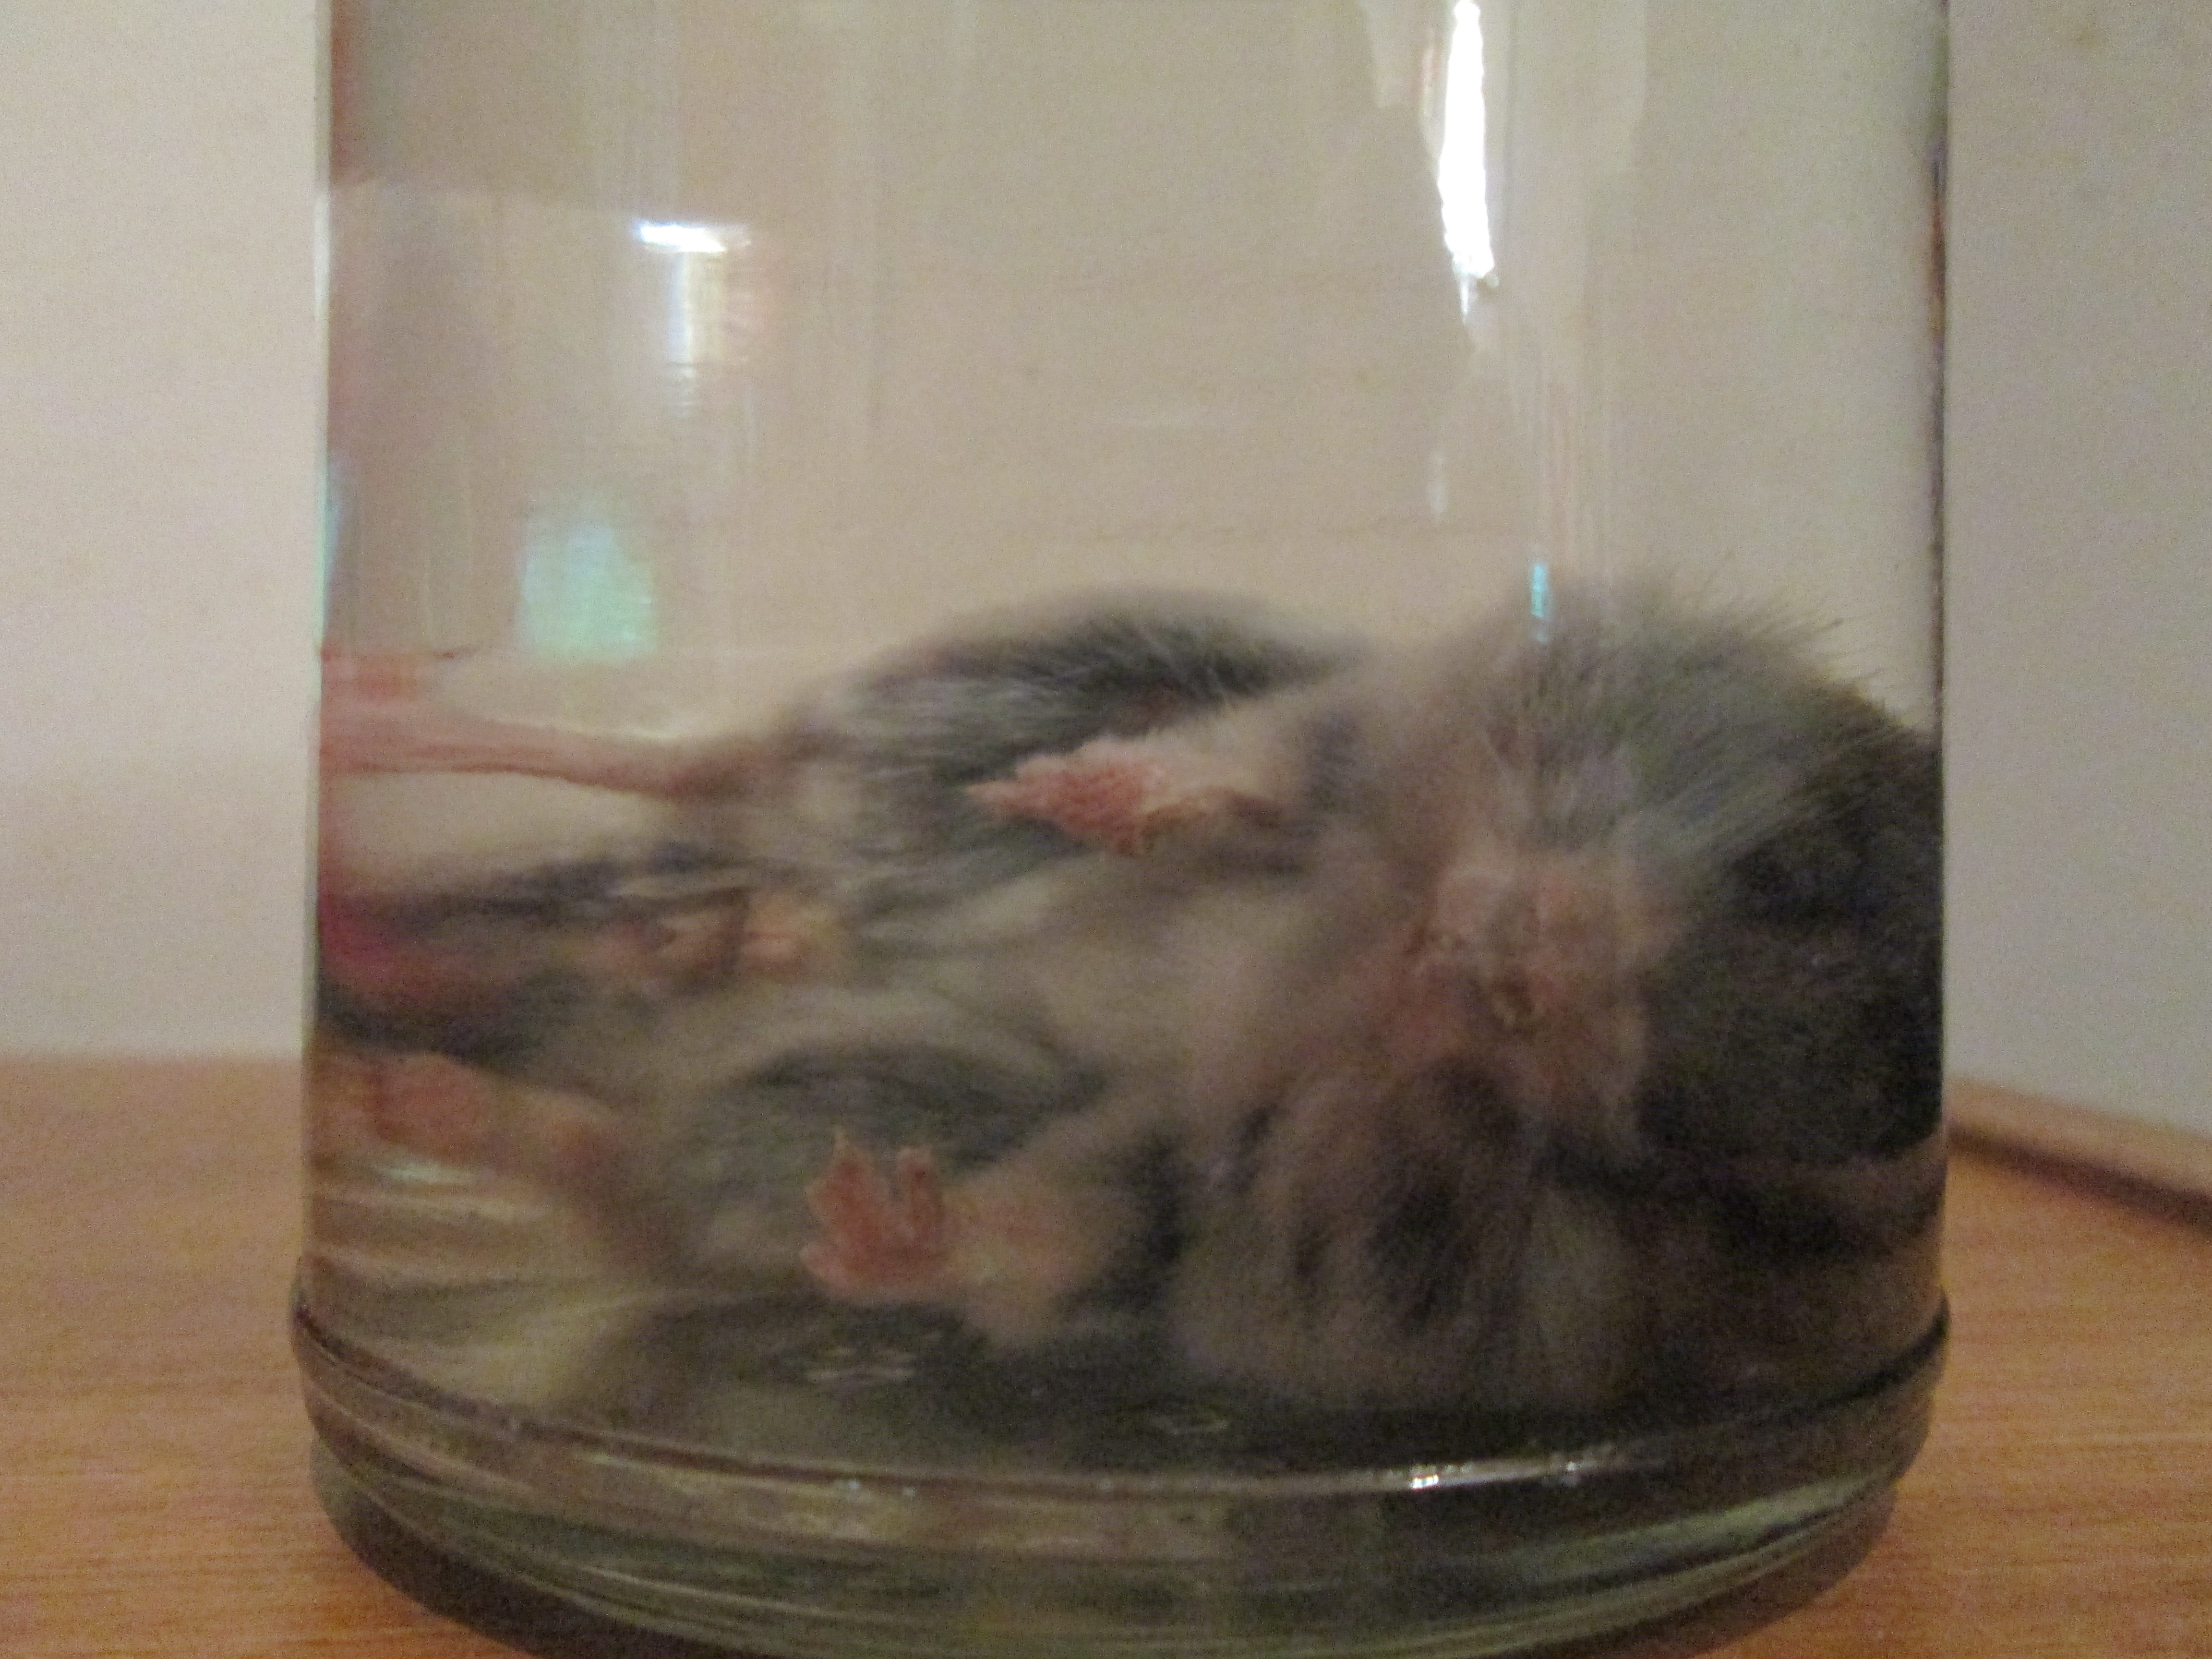 Chinese dwarf hamsters sexual maturity